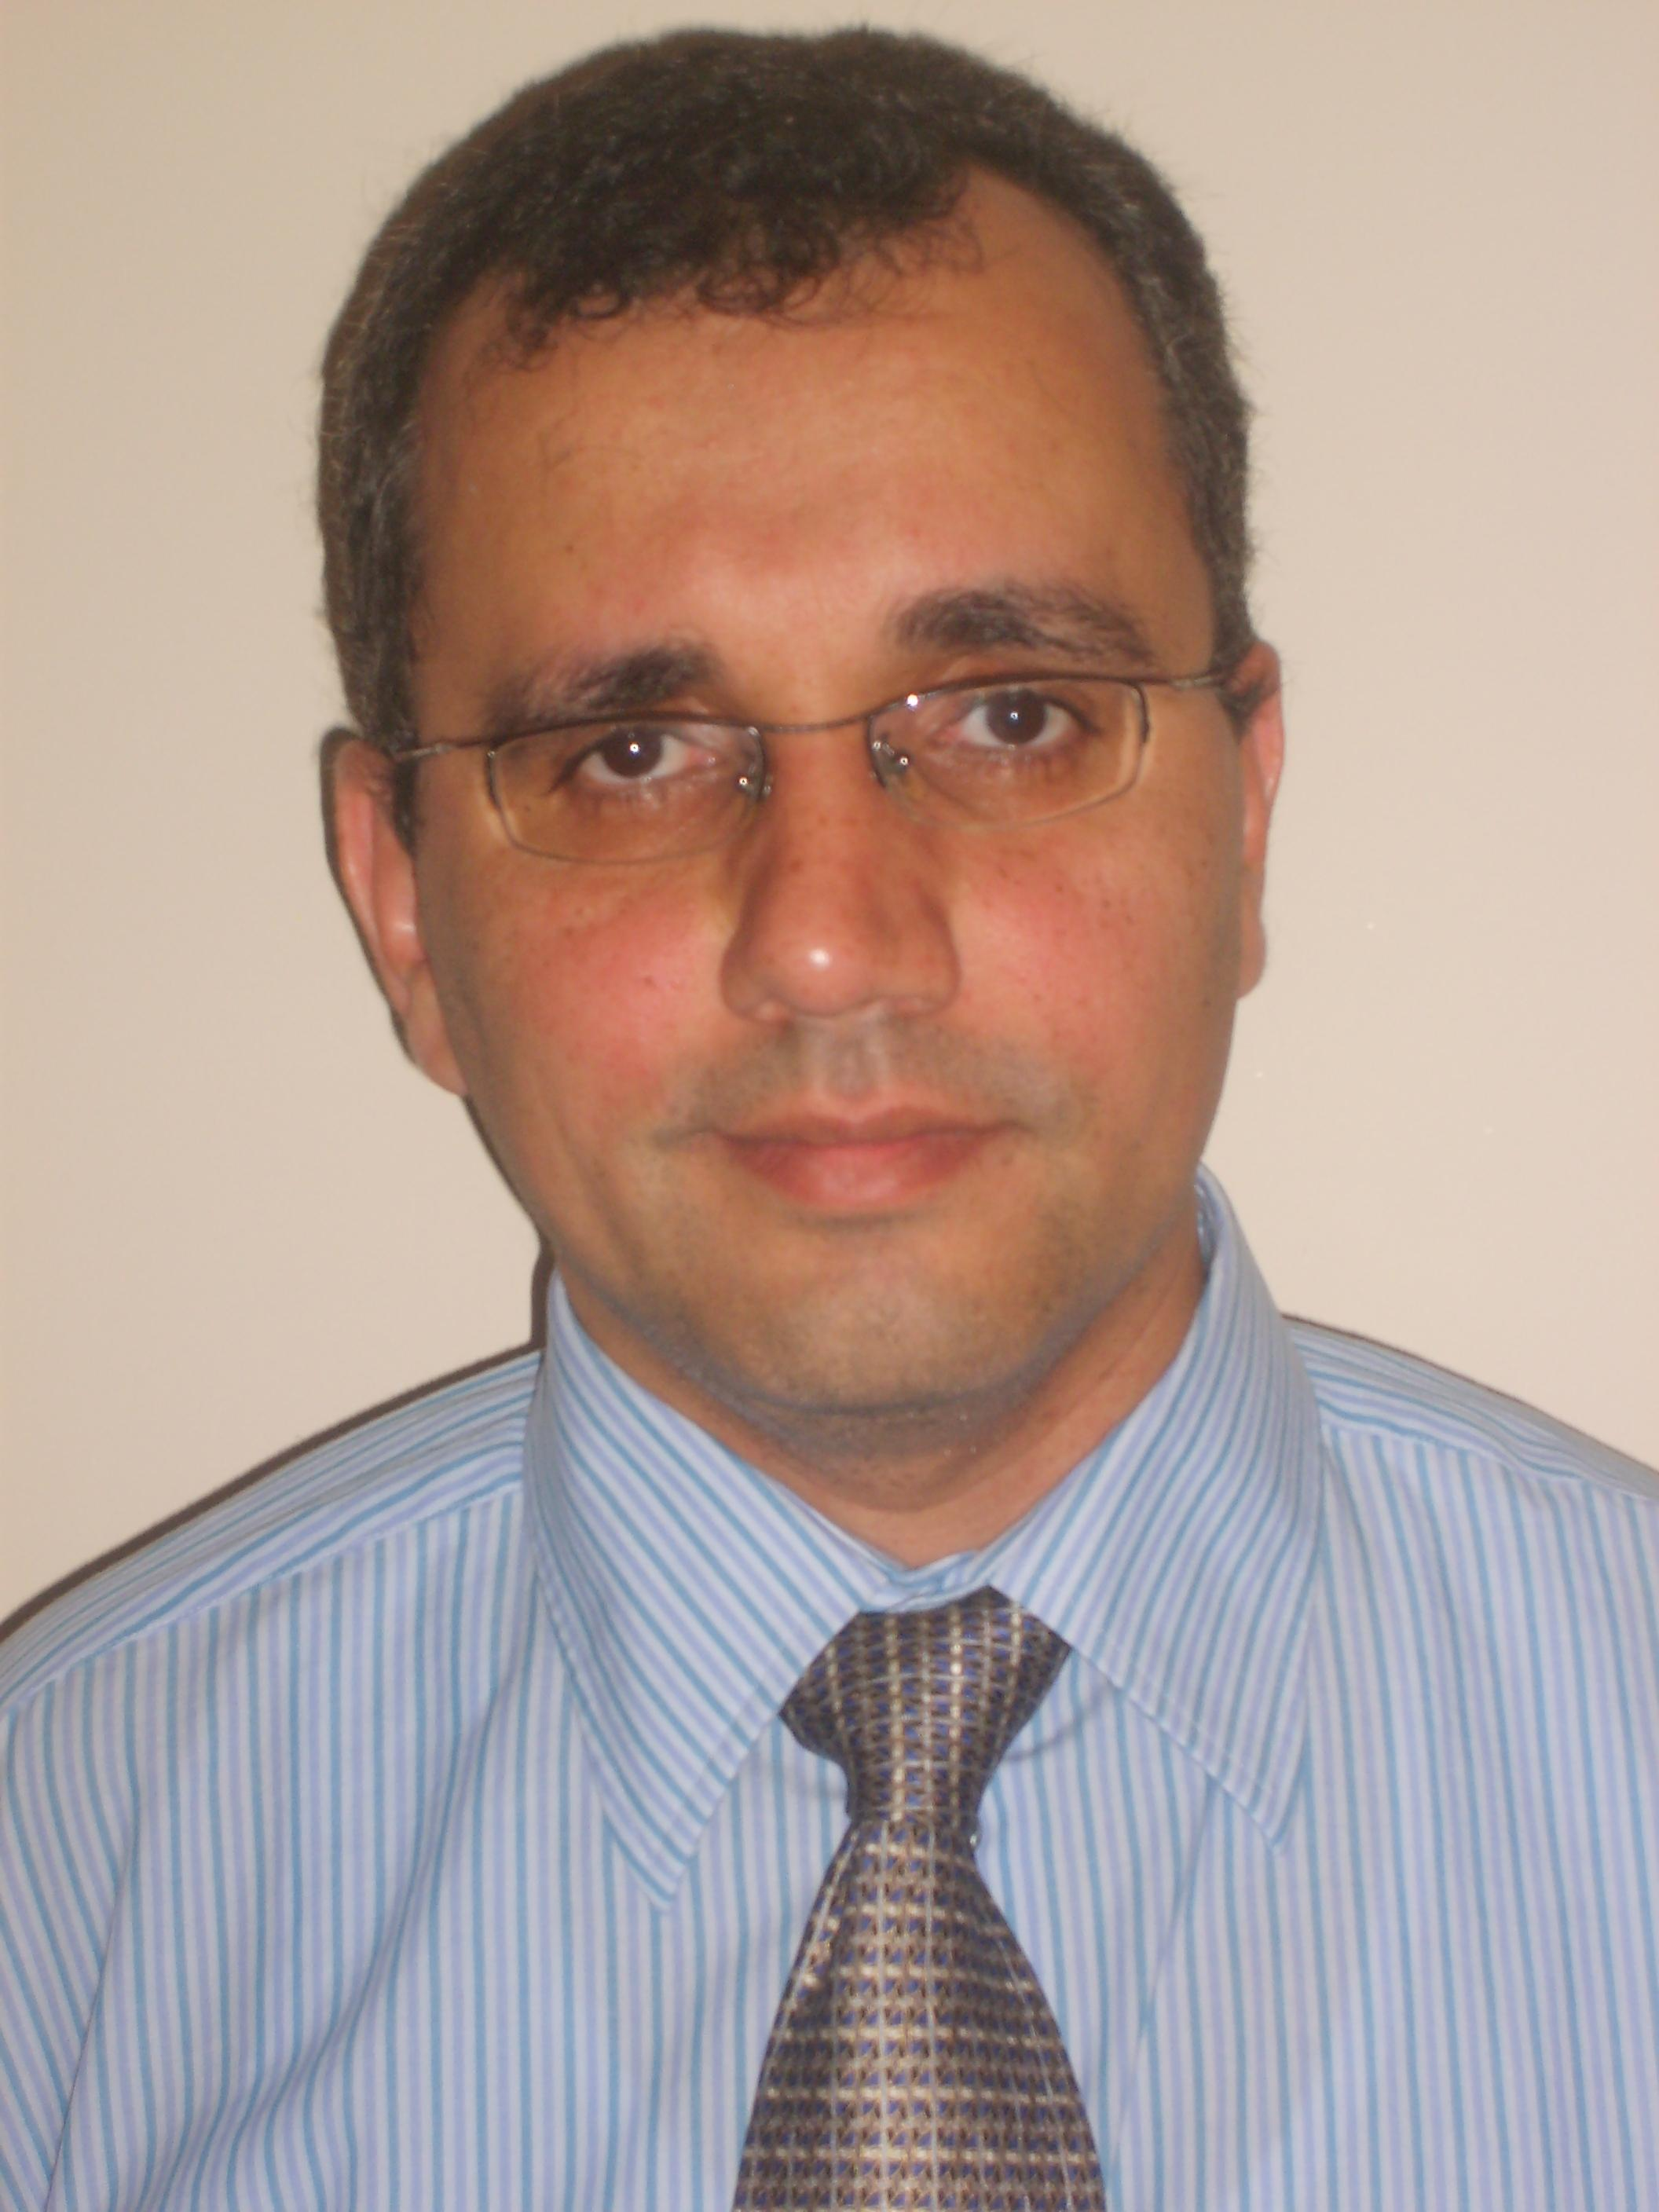 Amr Youssef, PhD